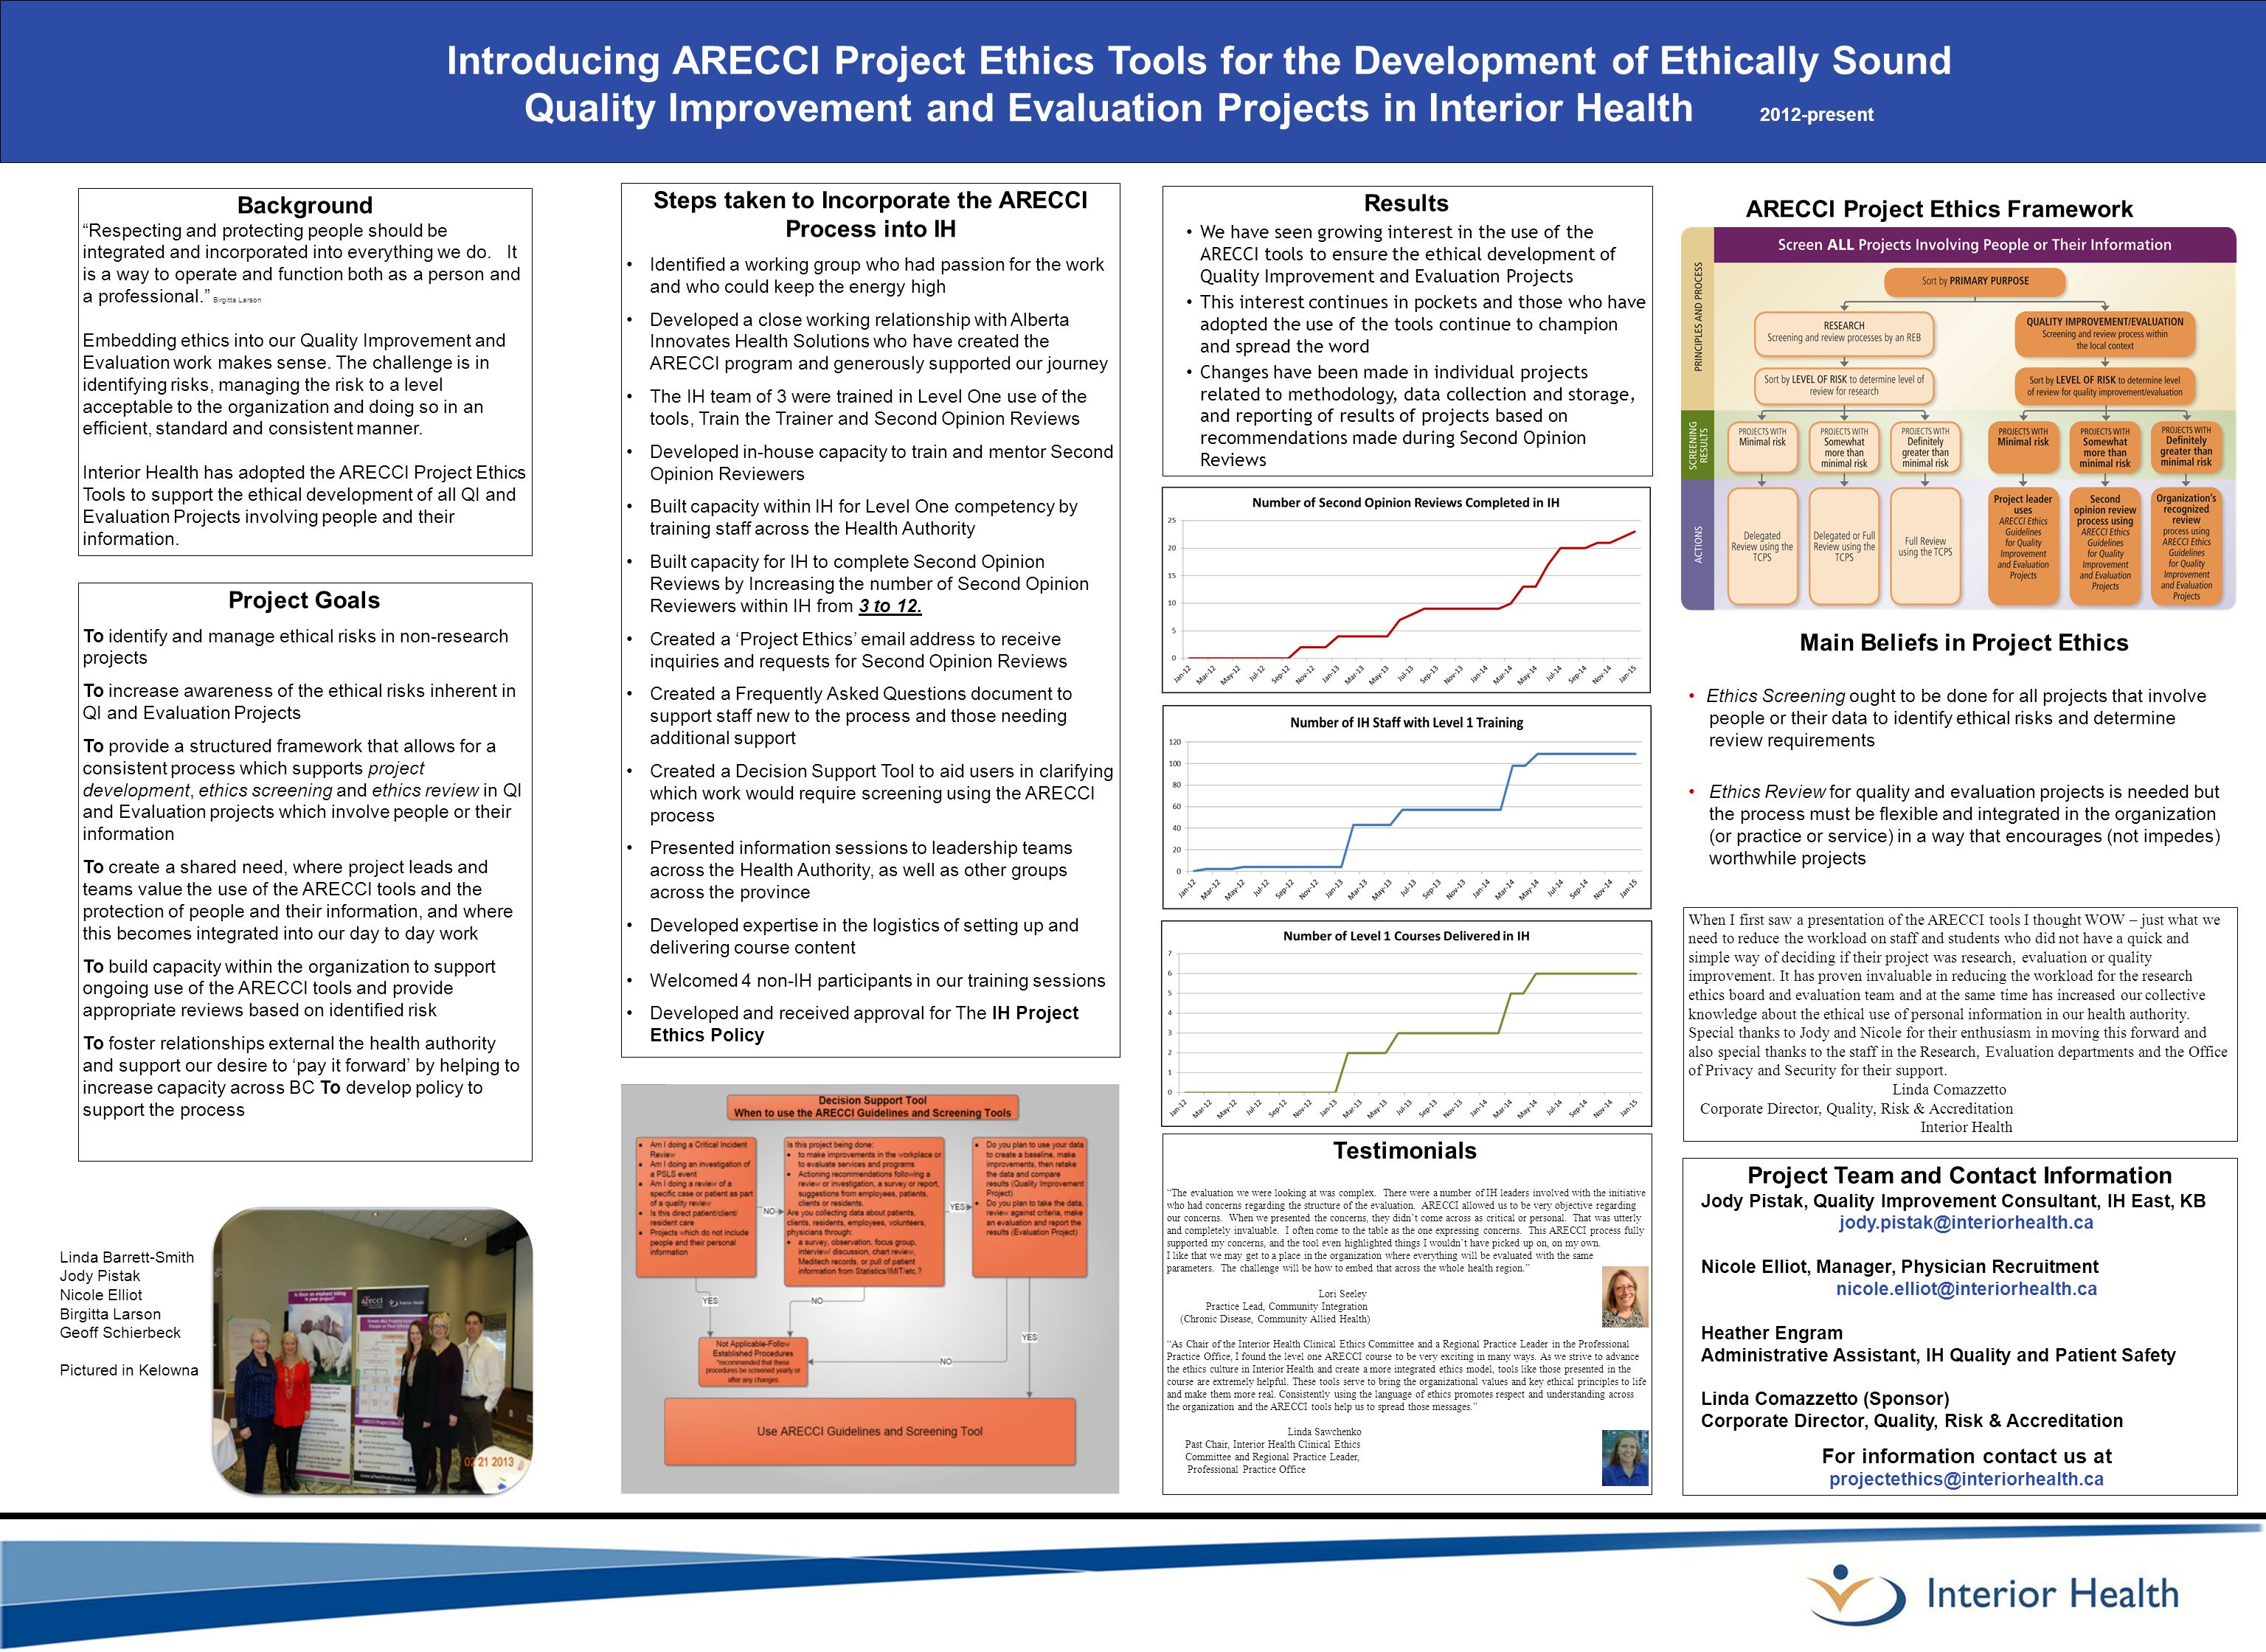 Introducing ARECCI Project Ethics Tools for the Development of Ethically Sound Quality Improvement and Evaluation Projects in Interior Health 2012-pre